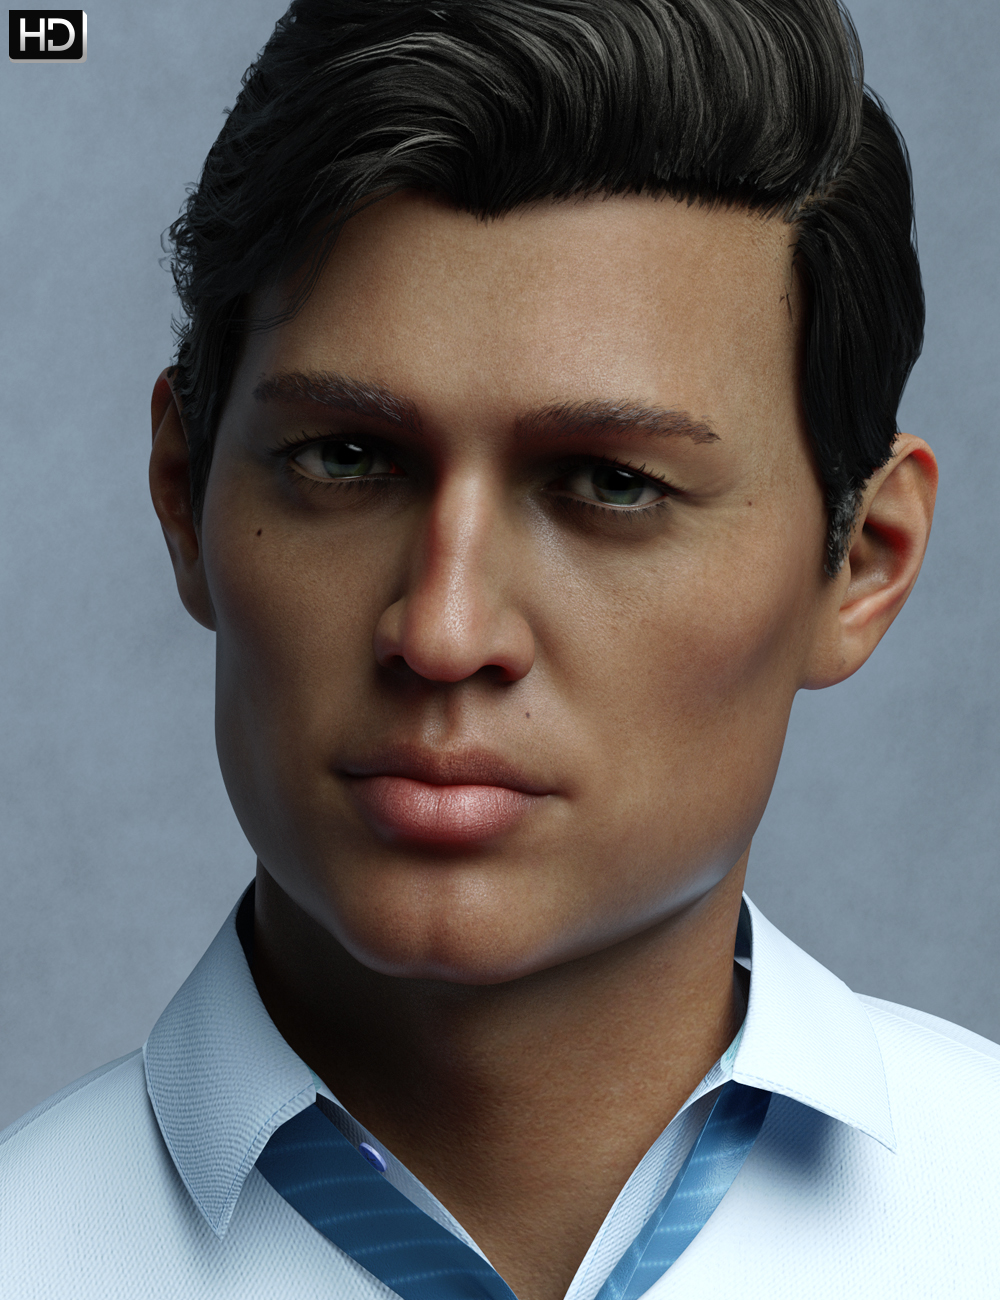 Jorge HD for Diego 8 by: Emrys, 3D Models by Daz 3D